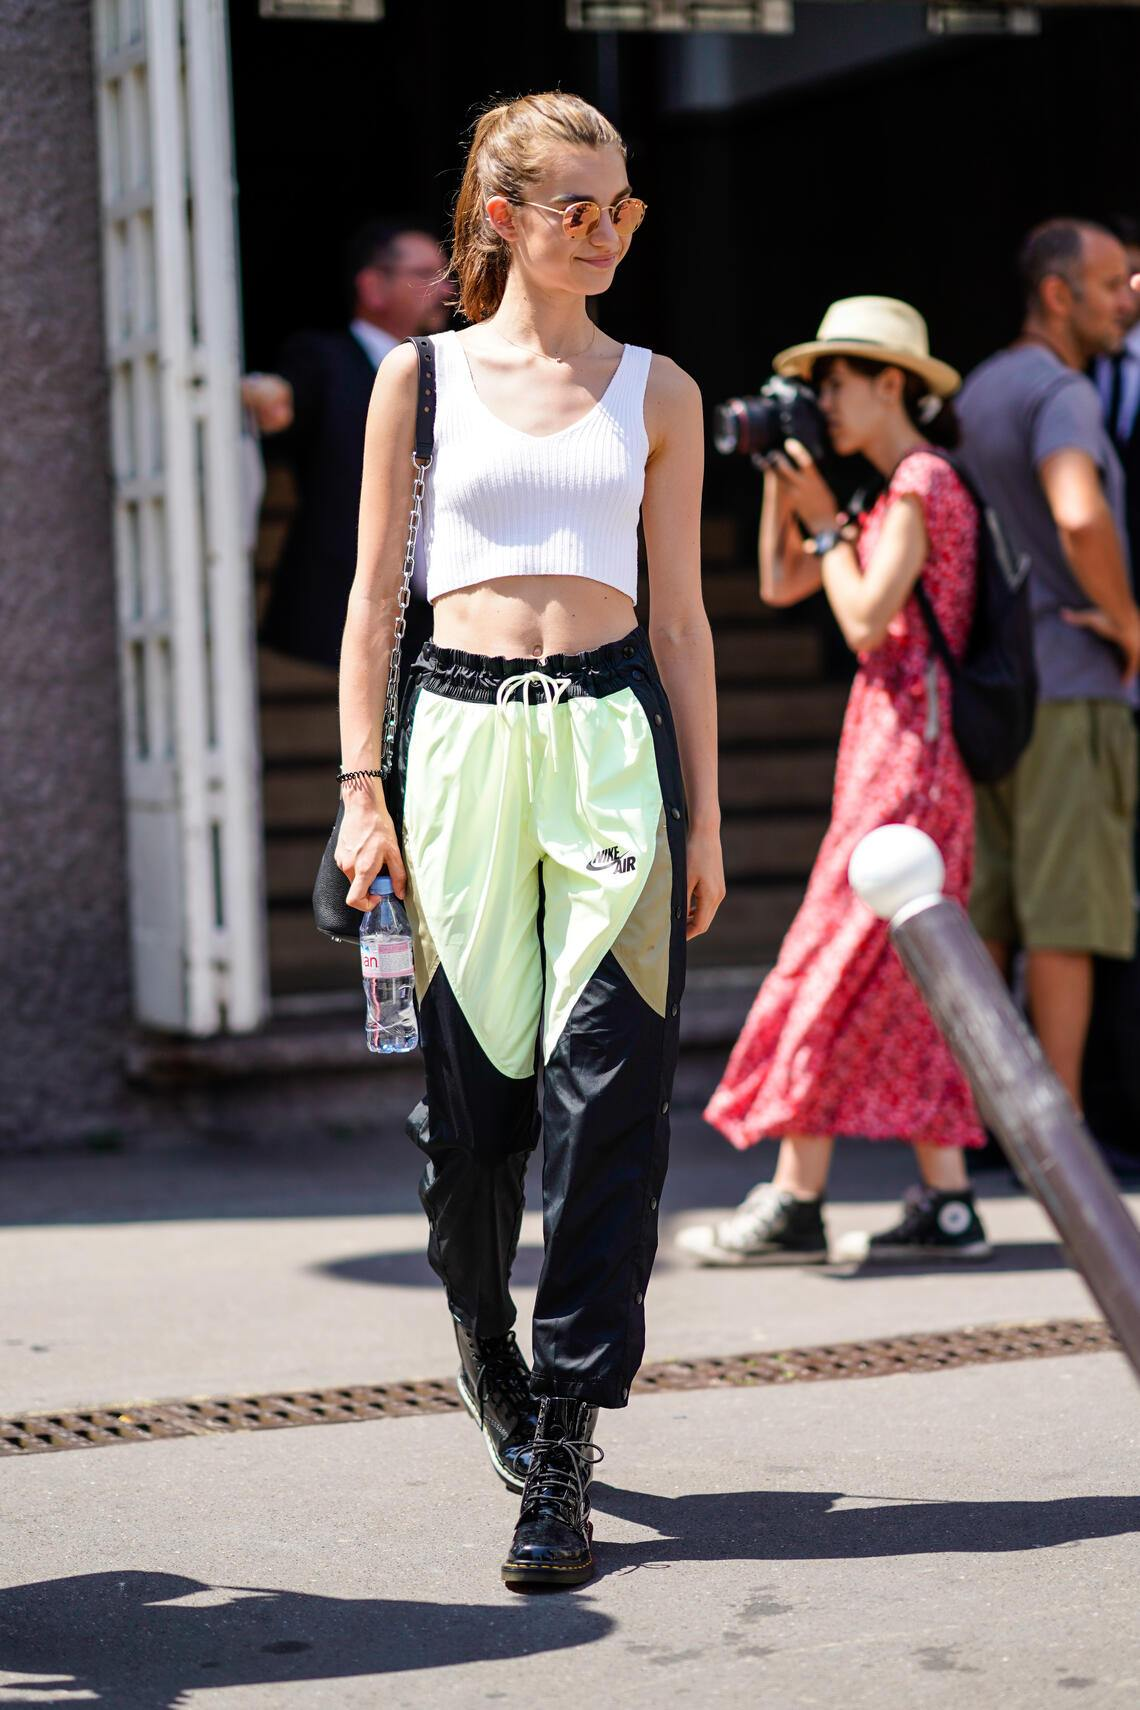 PARIS, FRANCE - JULY 01: A model wears sunglasses, a white cropped bare belly top, Nike pants, black boots , outside Acne Studios, during Paris Fashion Week - Womenswear Fall Winter 2019, on July 1, 2018 in Paris, France.  (Photo by Edward Berthelot/Getty Images)